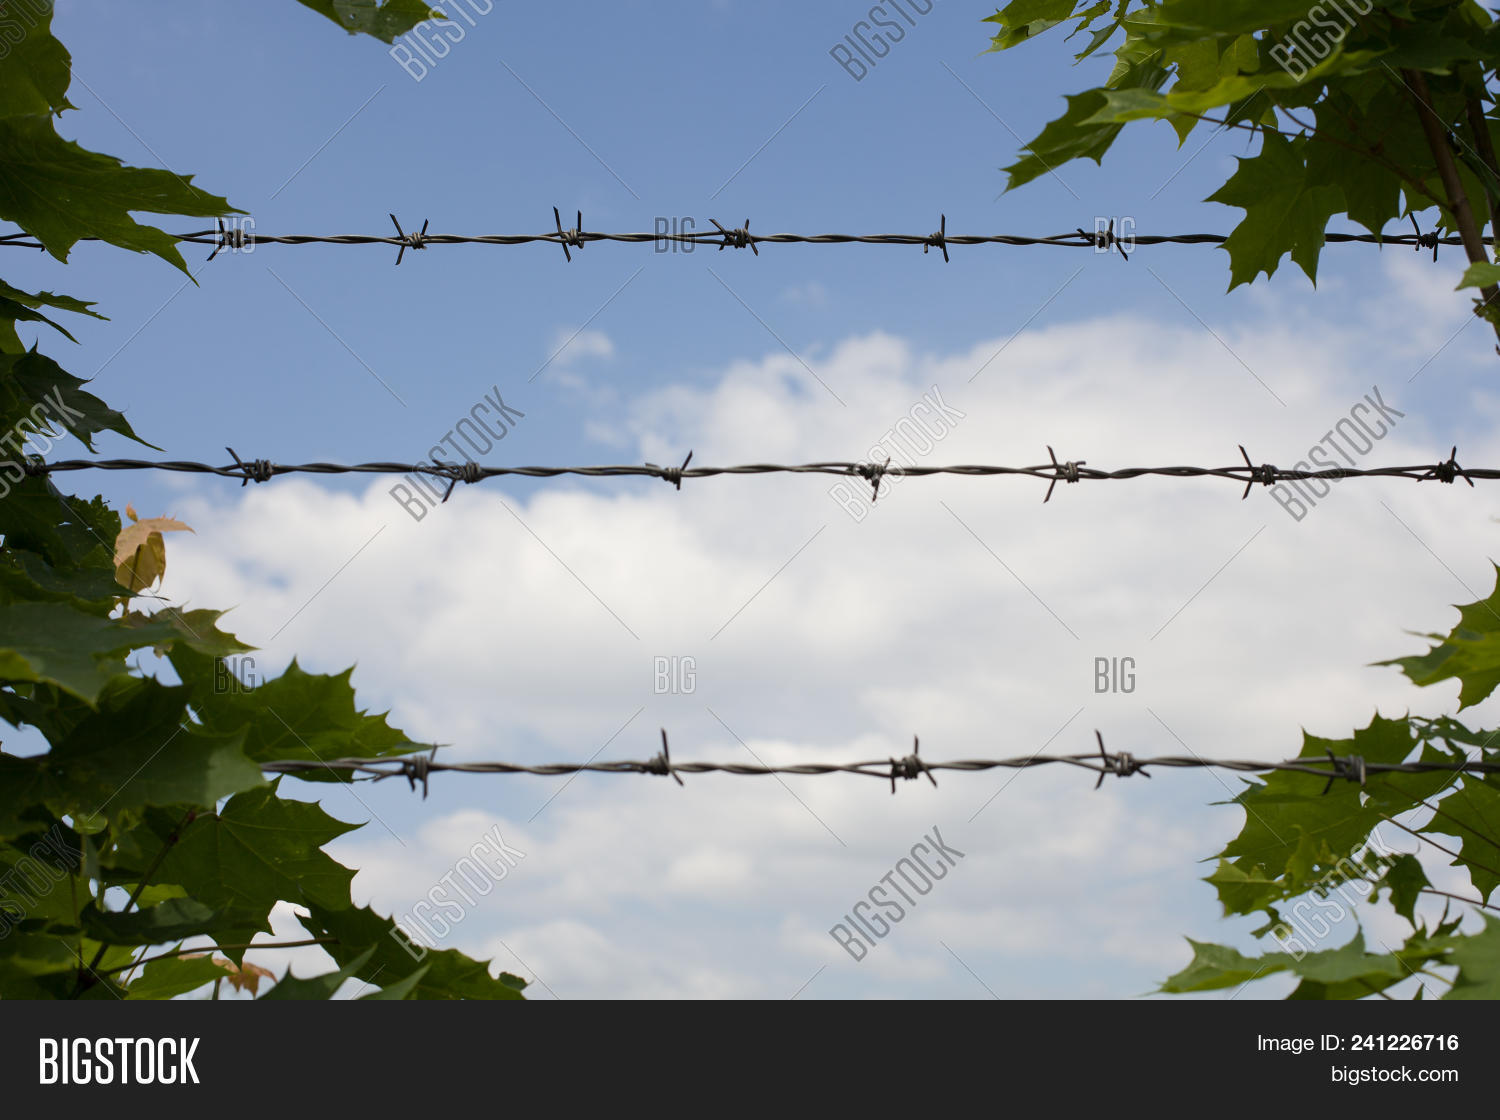 Barbed Wire Green Leaves.maple Image & Photo | Bigstock